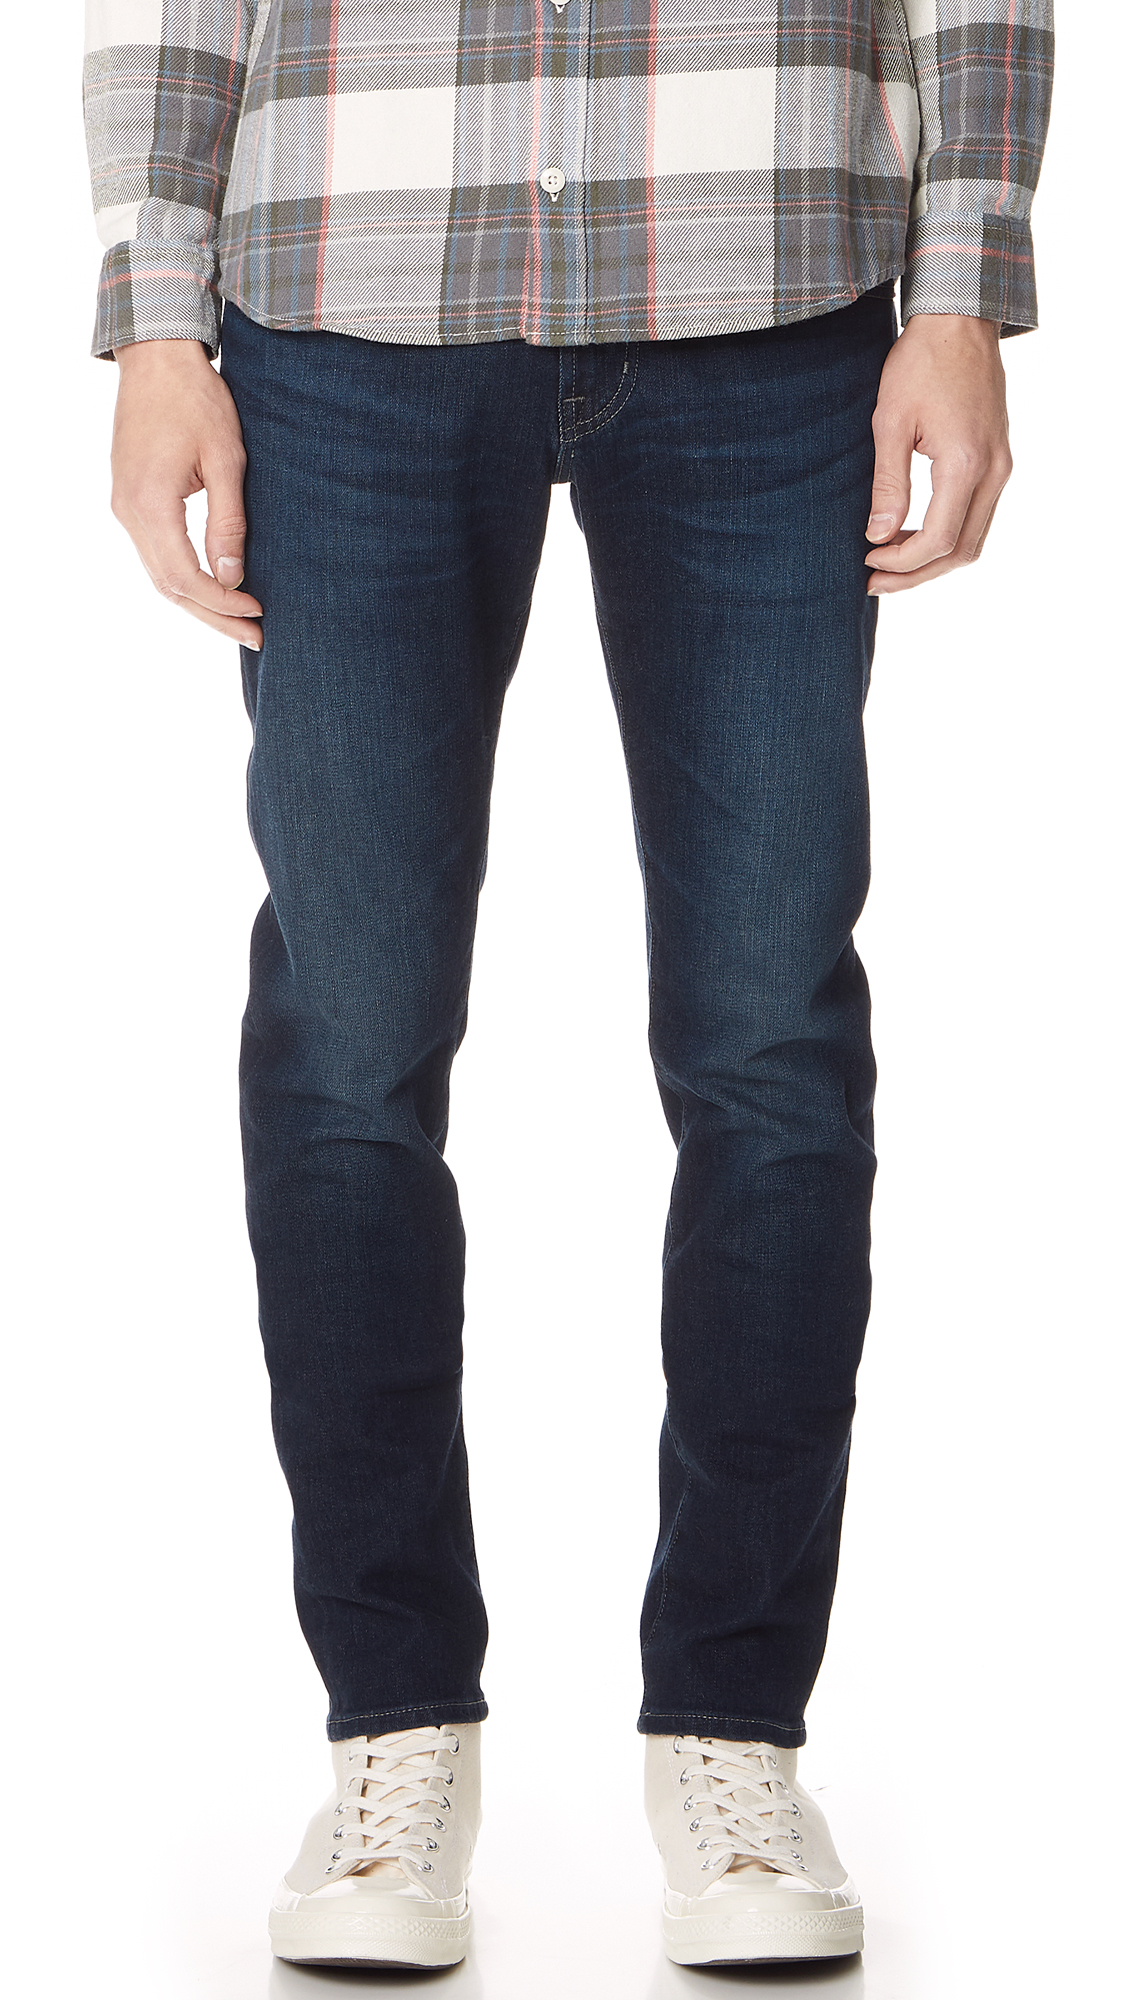 ag jeans, slim fit jeans, skinny jeans, blue jeans, tapered jeans, stretch jeans